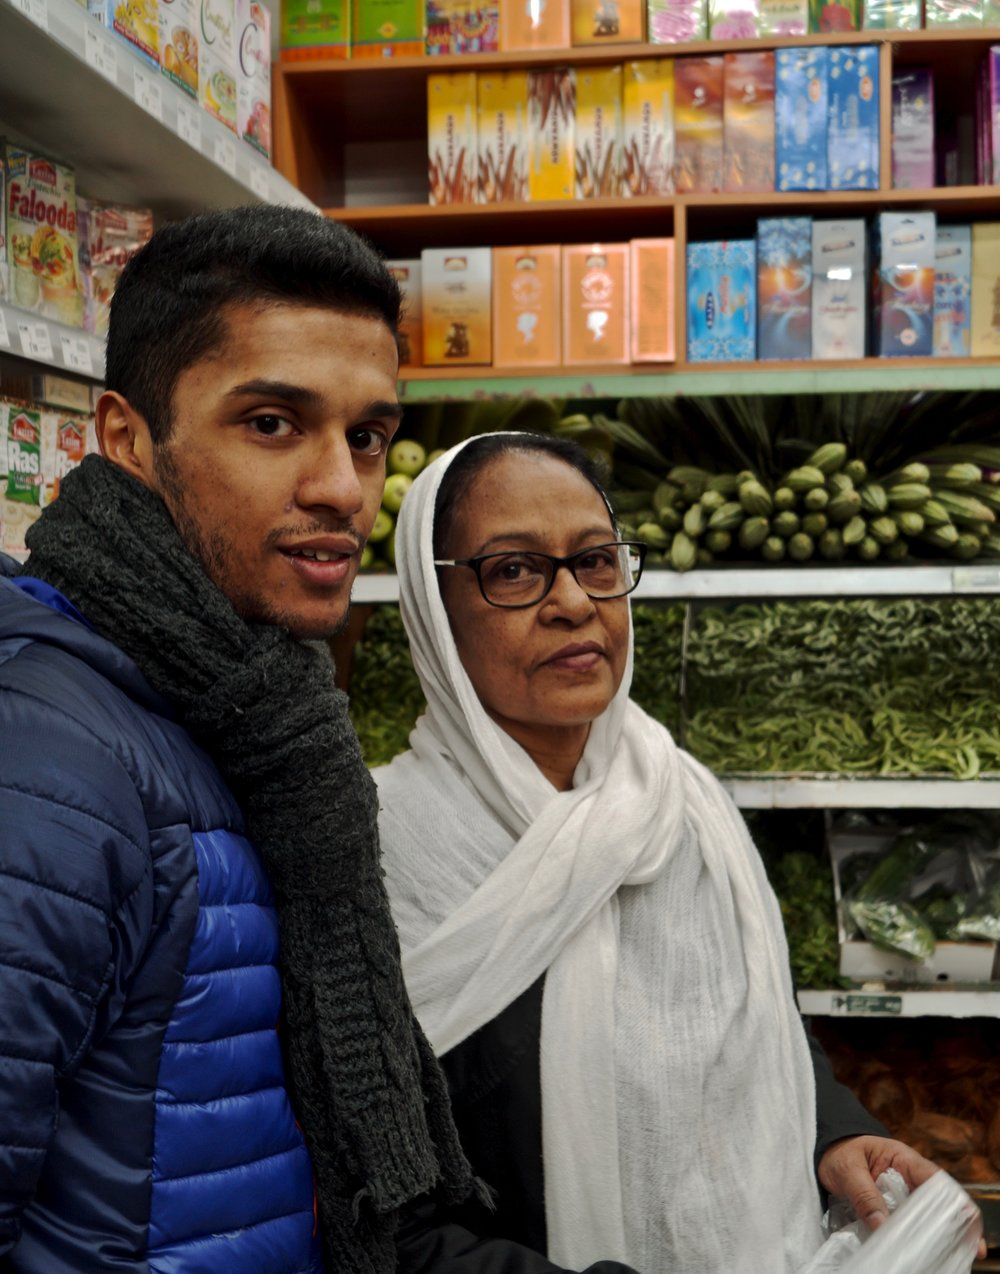 Abdoussalam Shajahan (30) with his mother Halima Shajahan